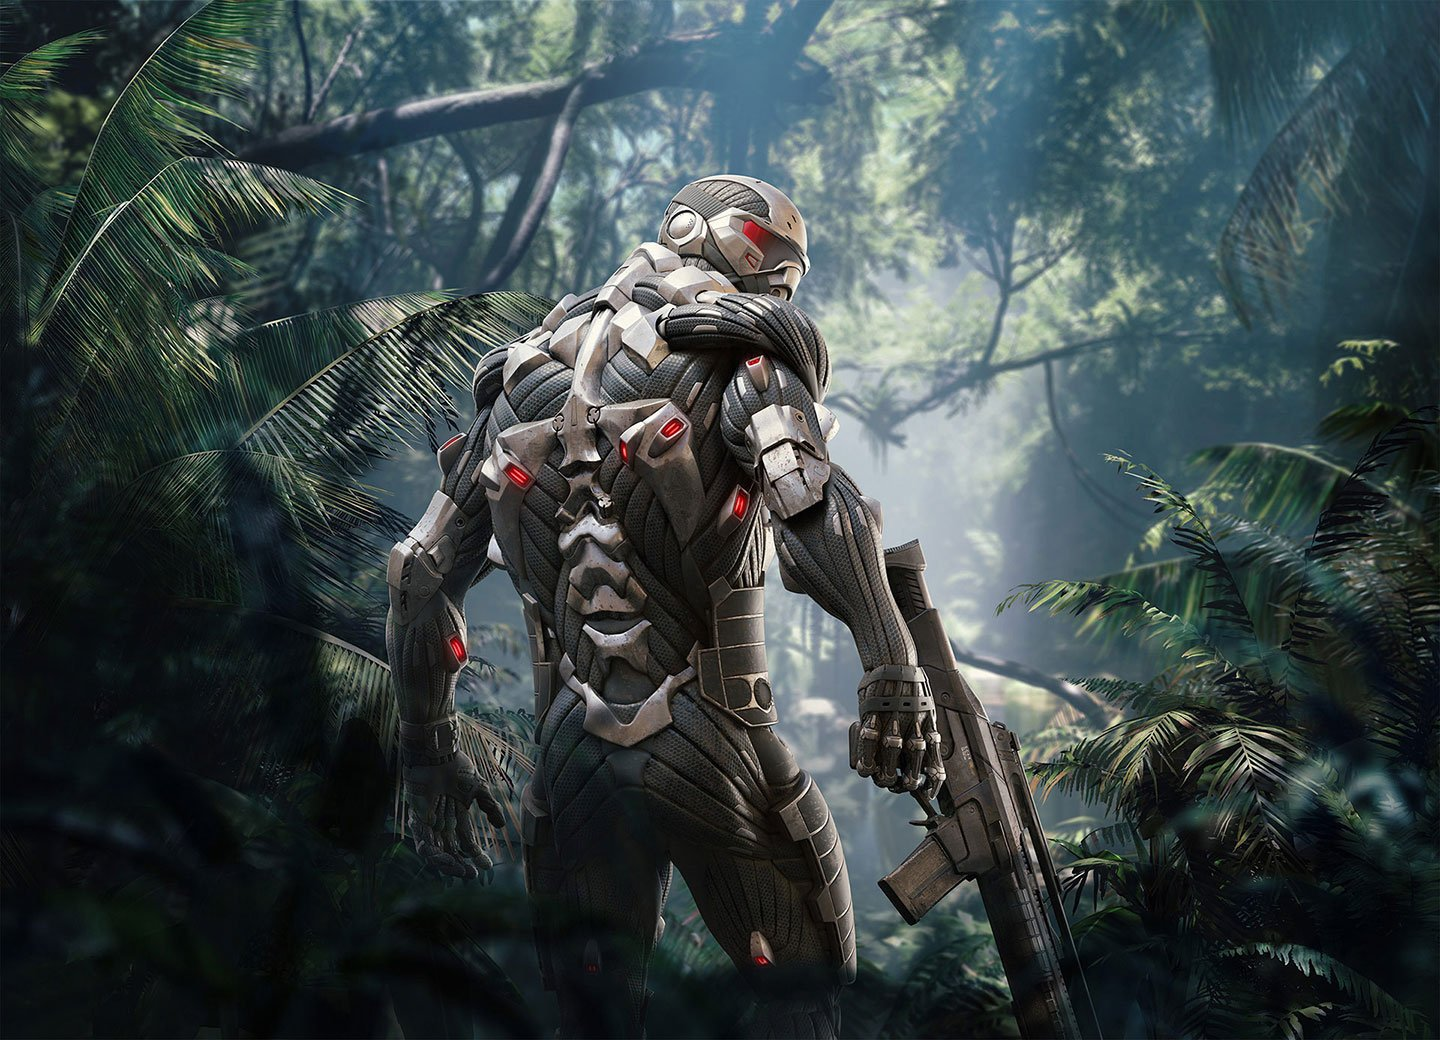 Crysis Remastered officially announced